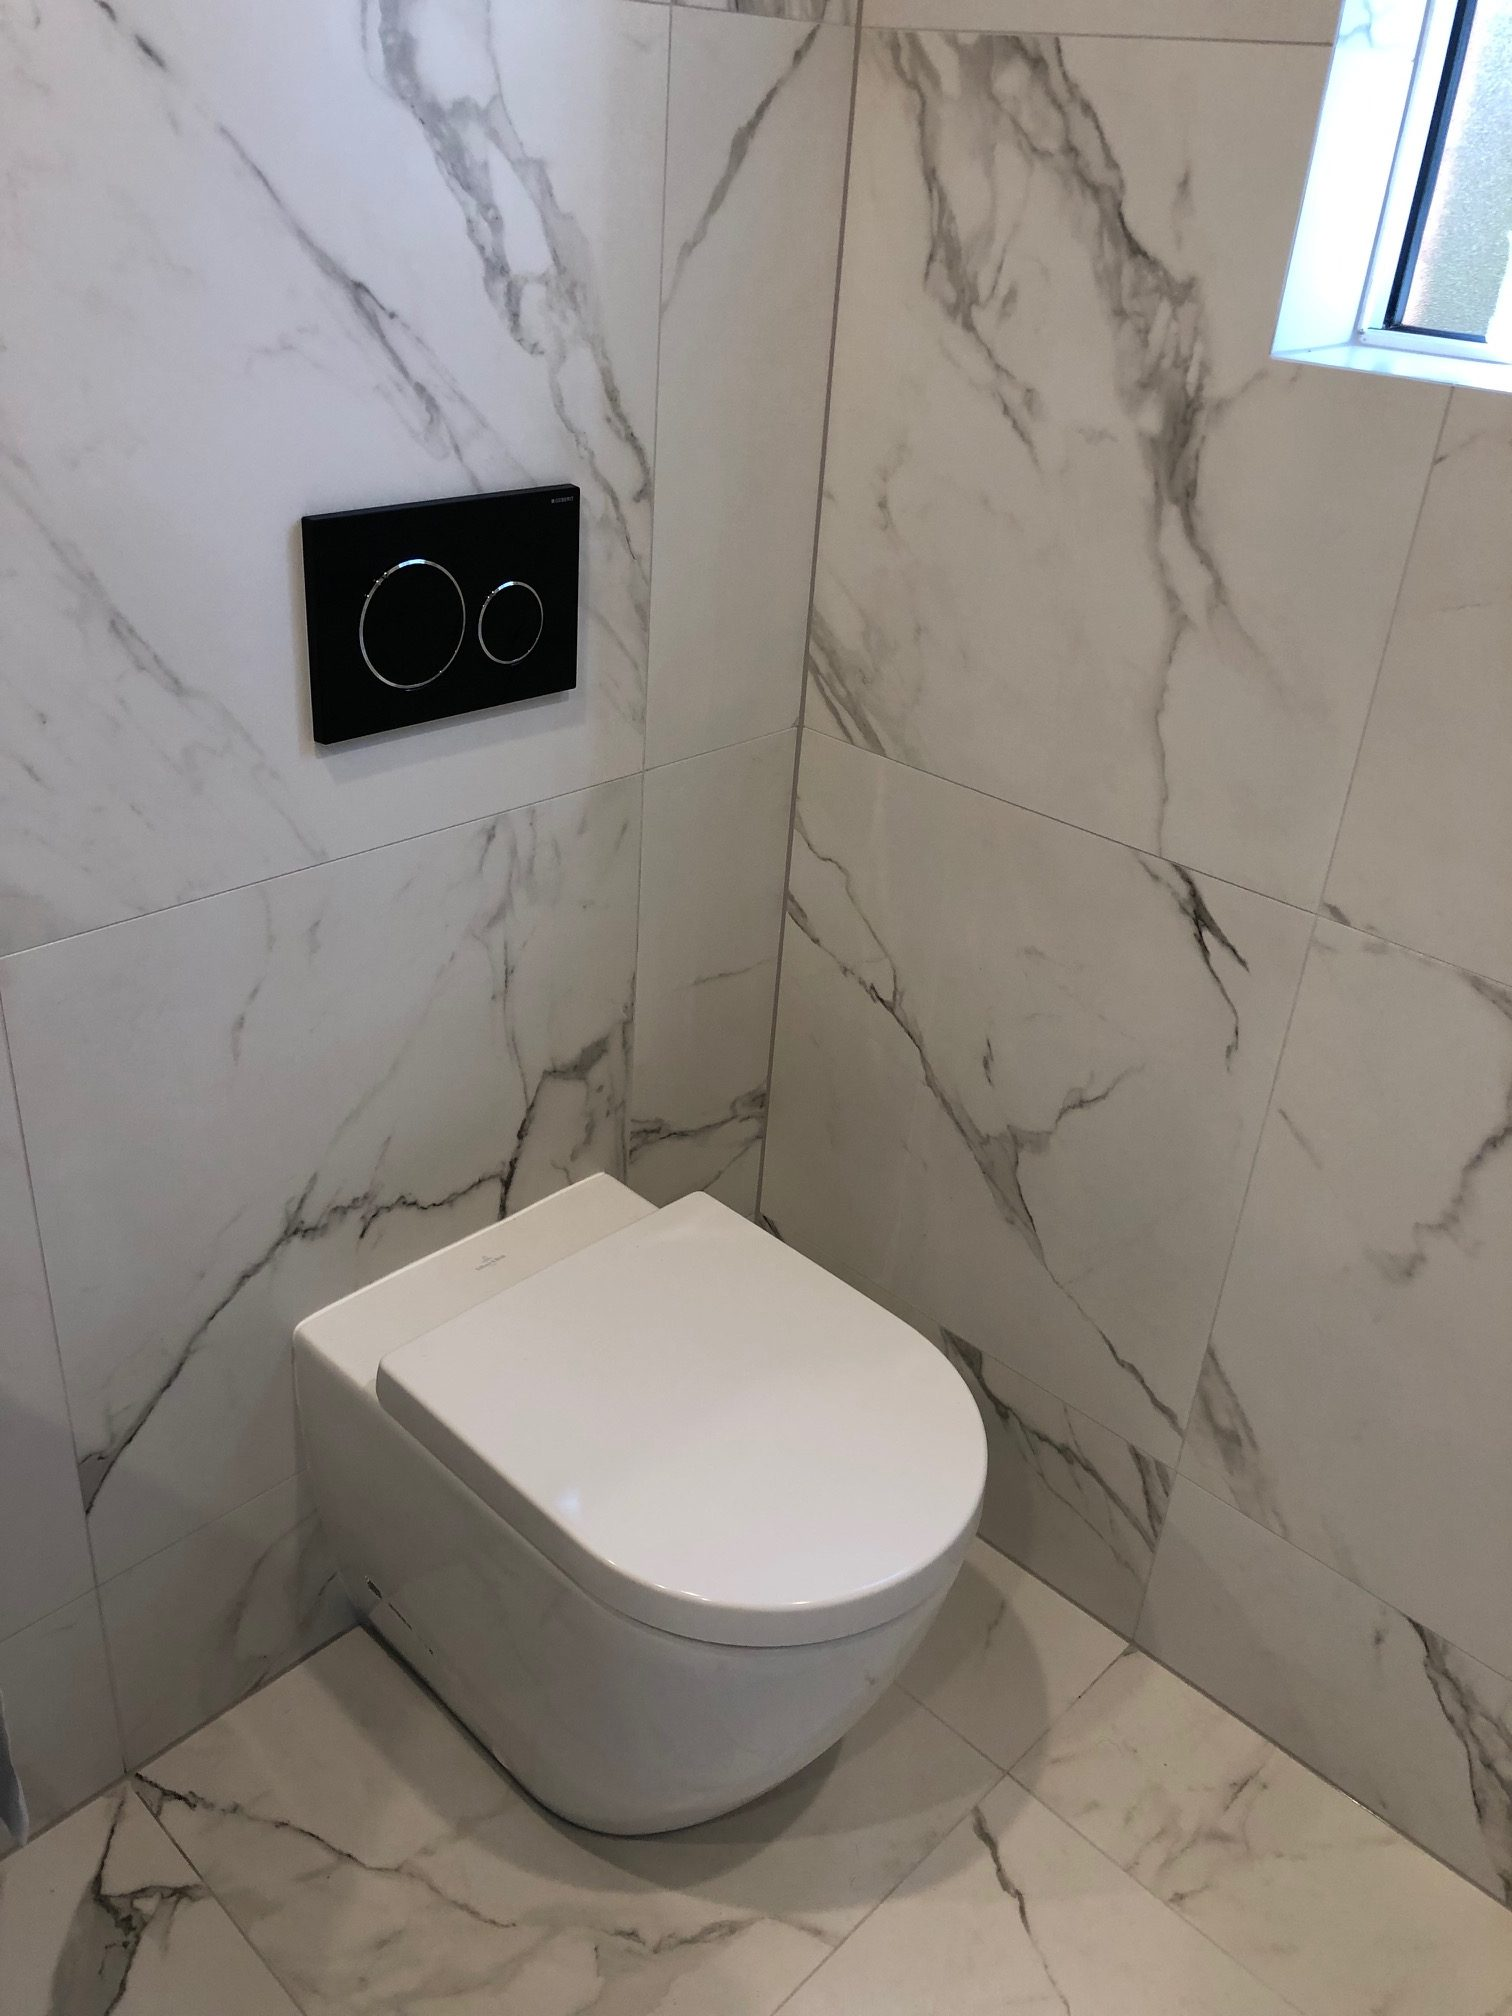 Bathroom toilet area with Warmtech Inscreed heating system